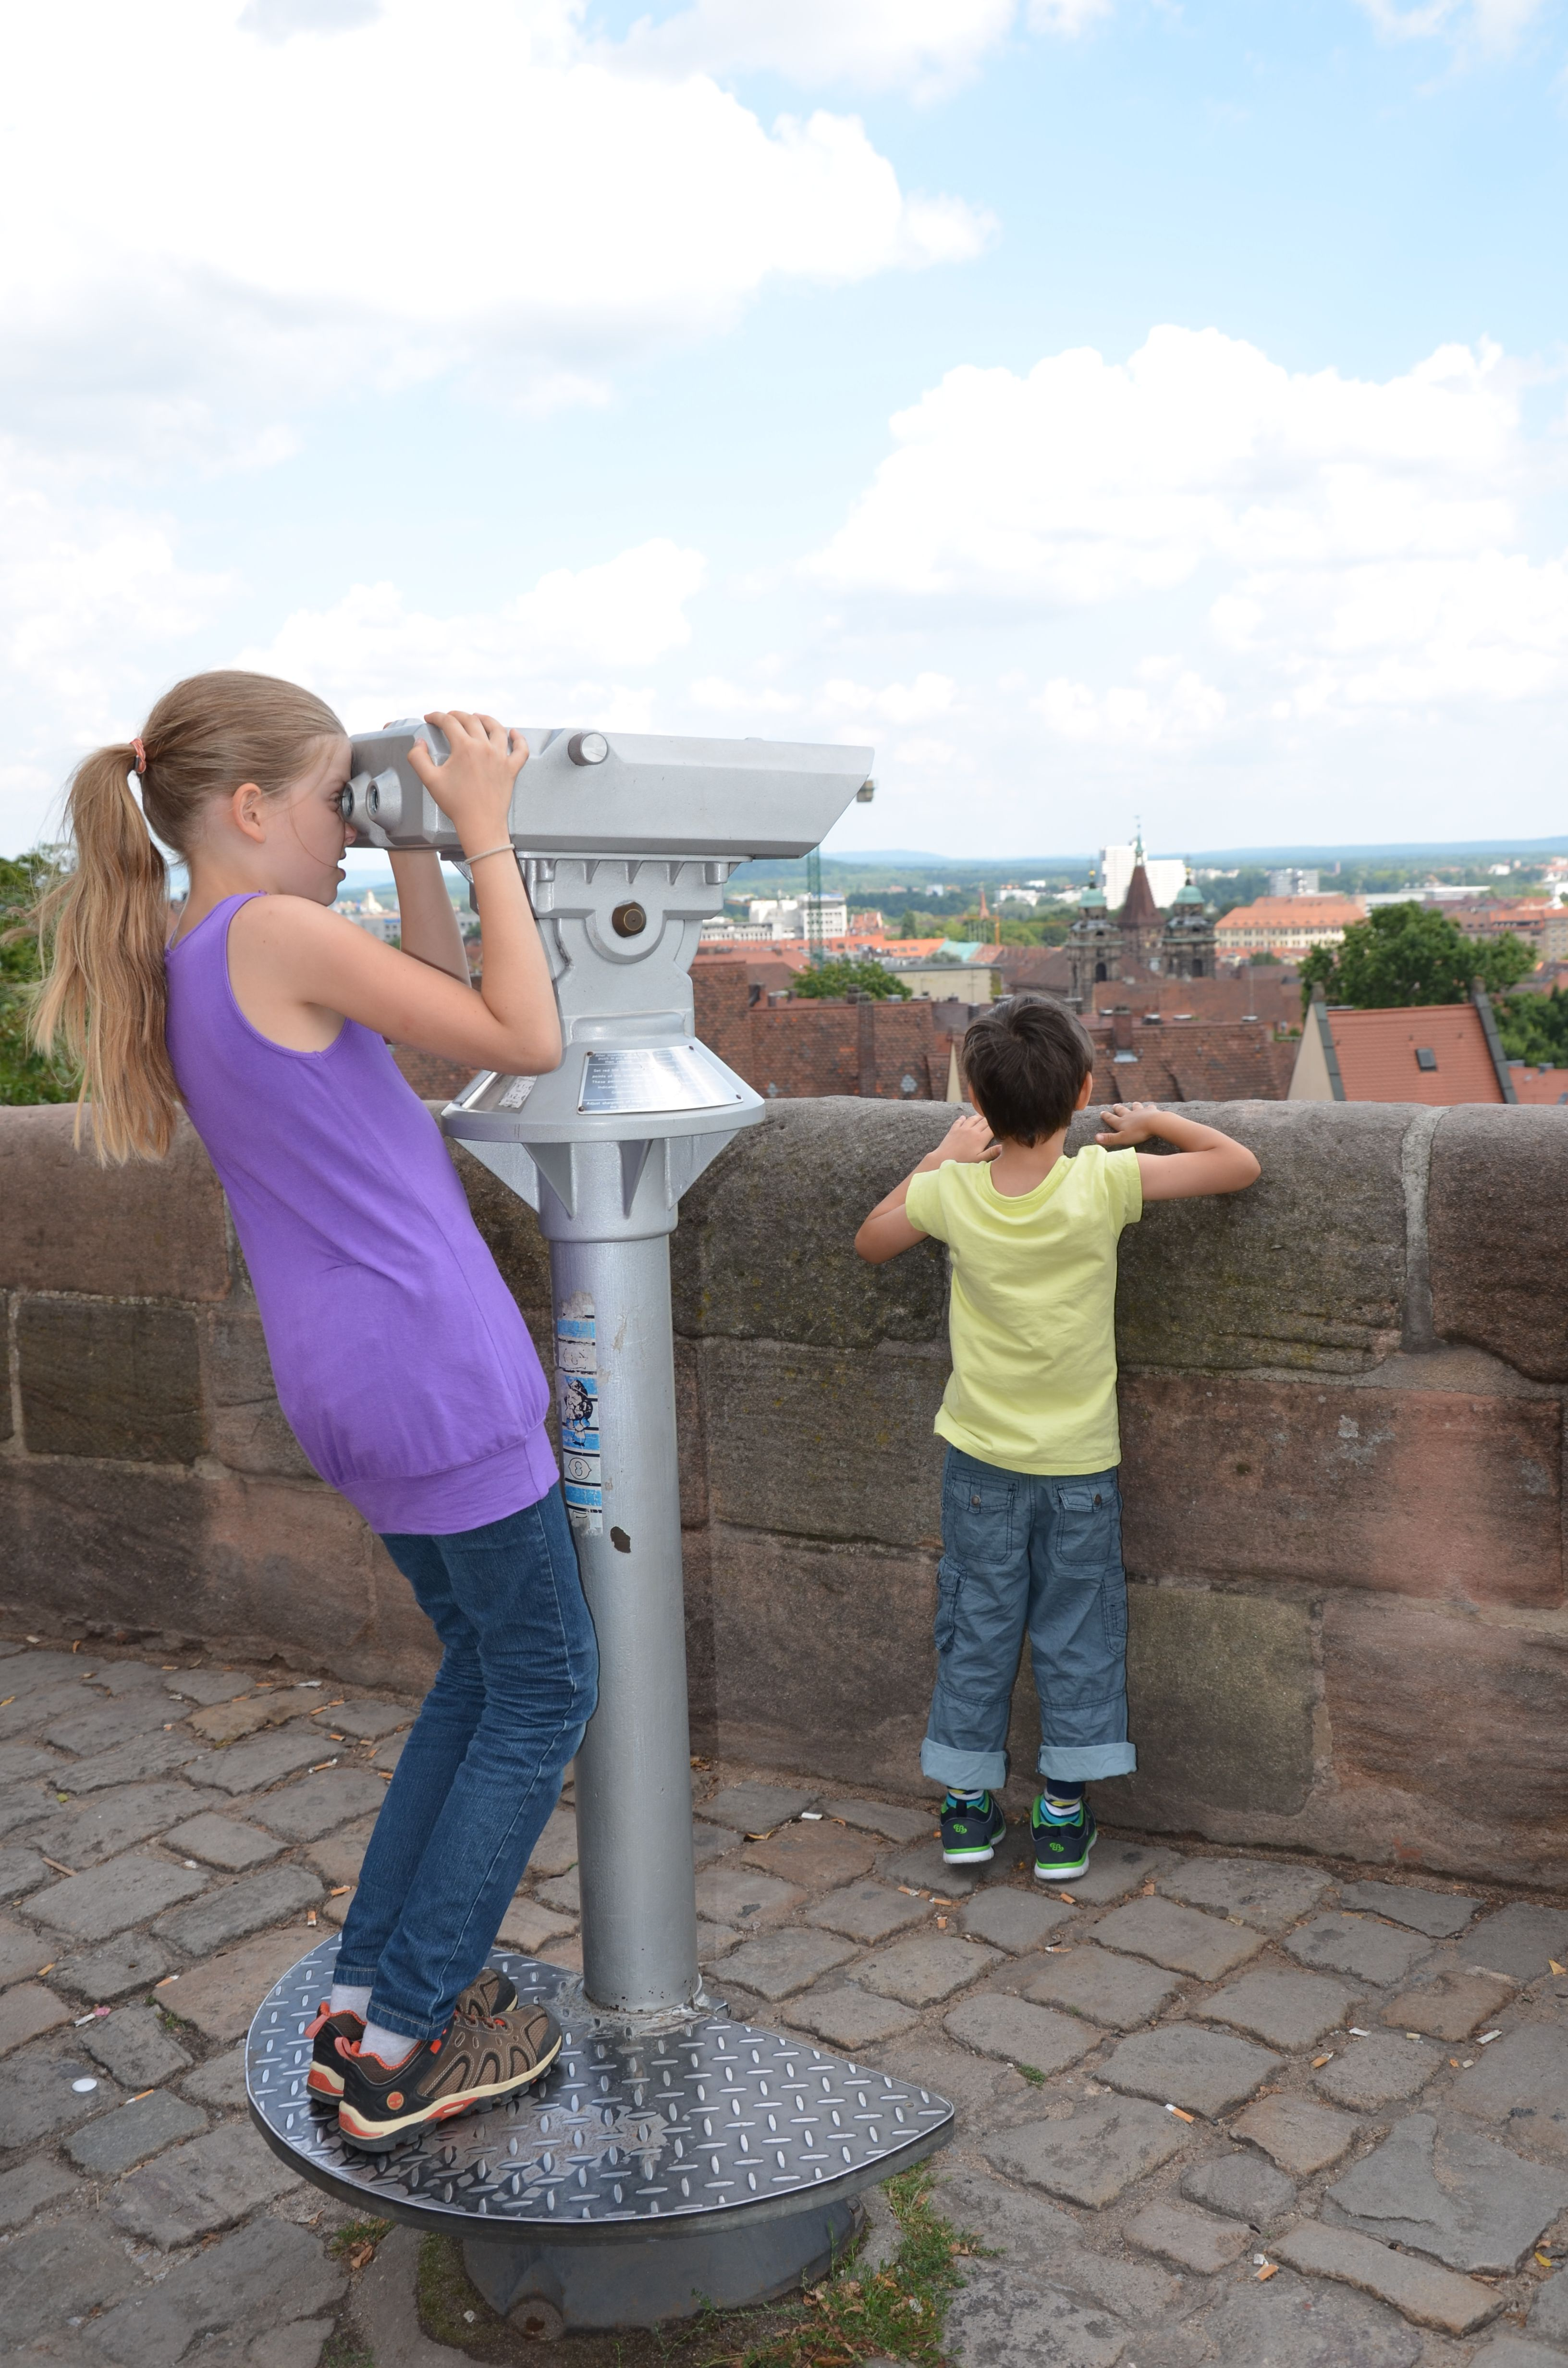 The Imperial Castle and the view from it are a highlight for little princesses and knights! (photo: CTZ Nürnberg) ------------------------------------------------------- Terms of use: It is allowed to use the photo for touristic or economic depiction of the location Nuremberg or for press work. A commercial use is strictly prohibited. The photo is protected by copyright, the photographer has to be named when using the picture.